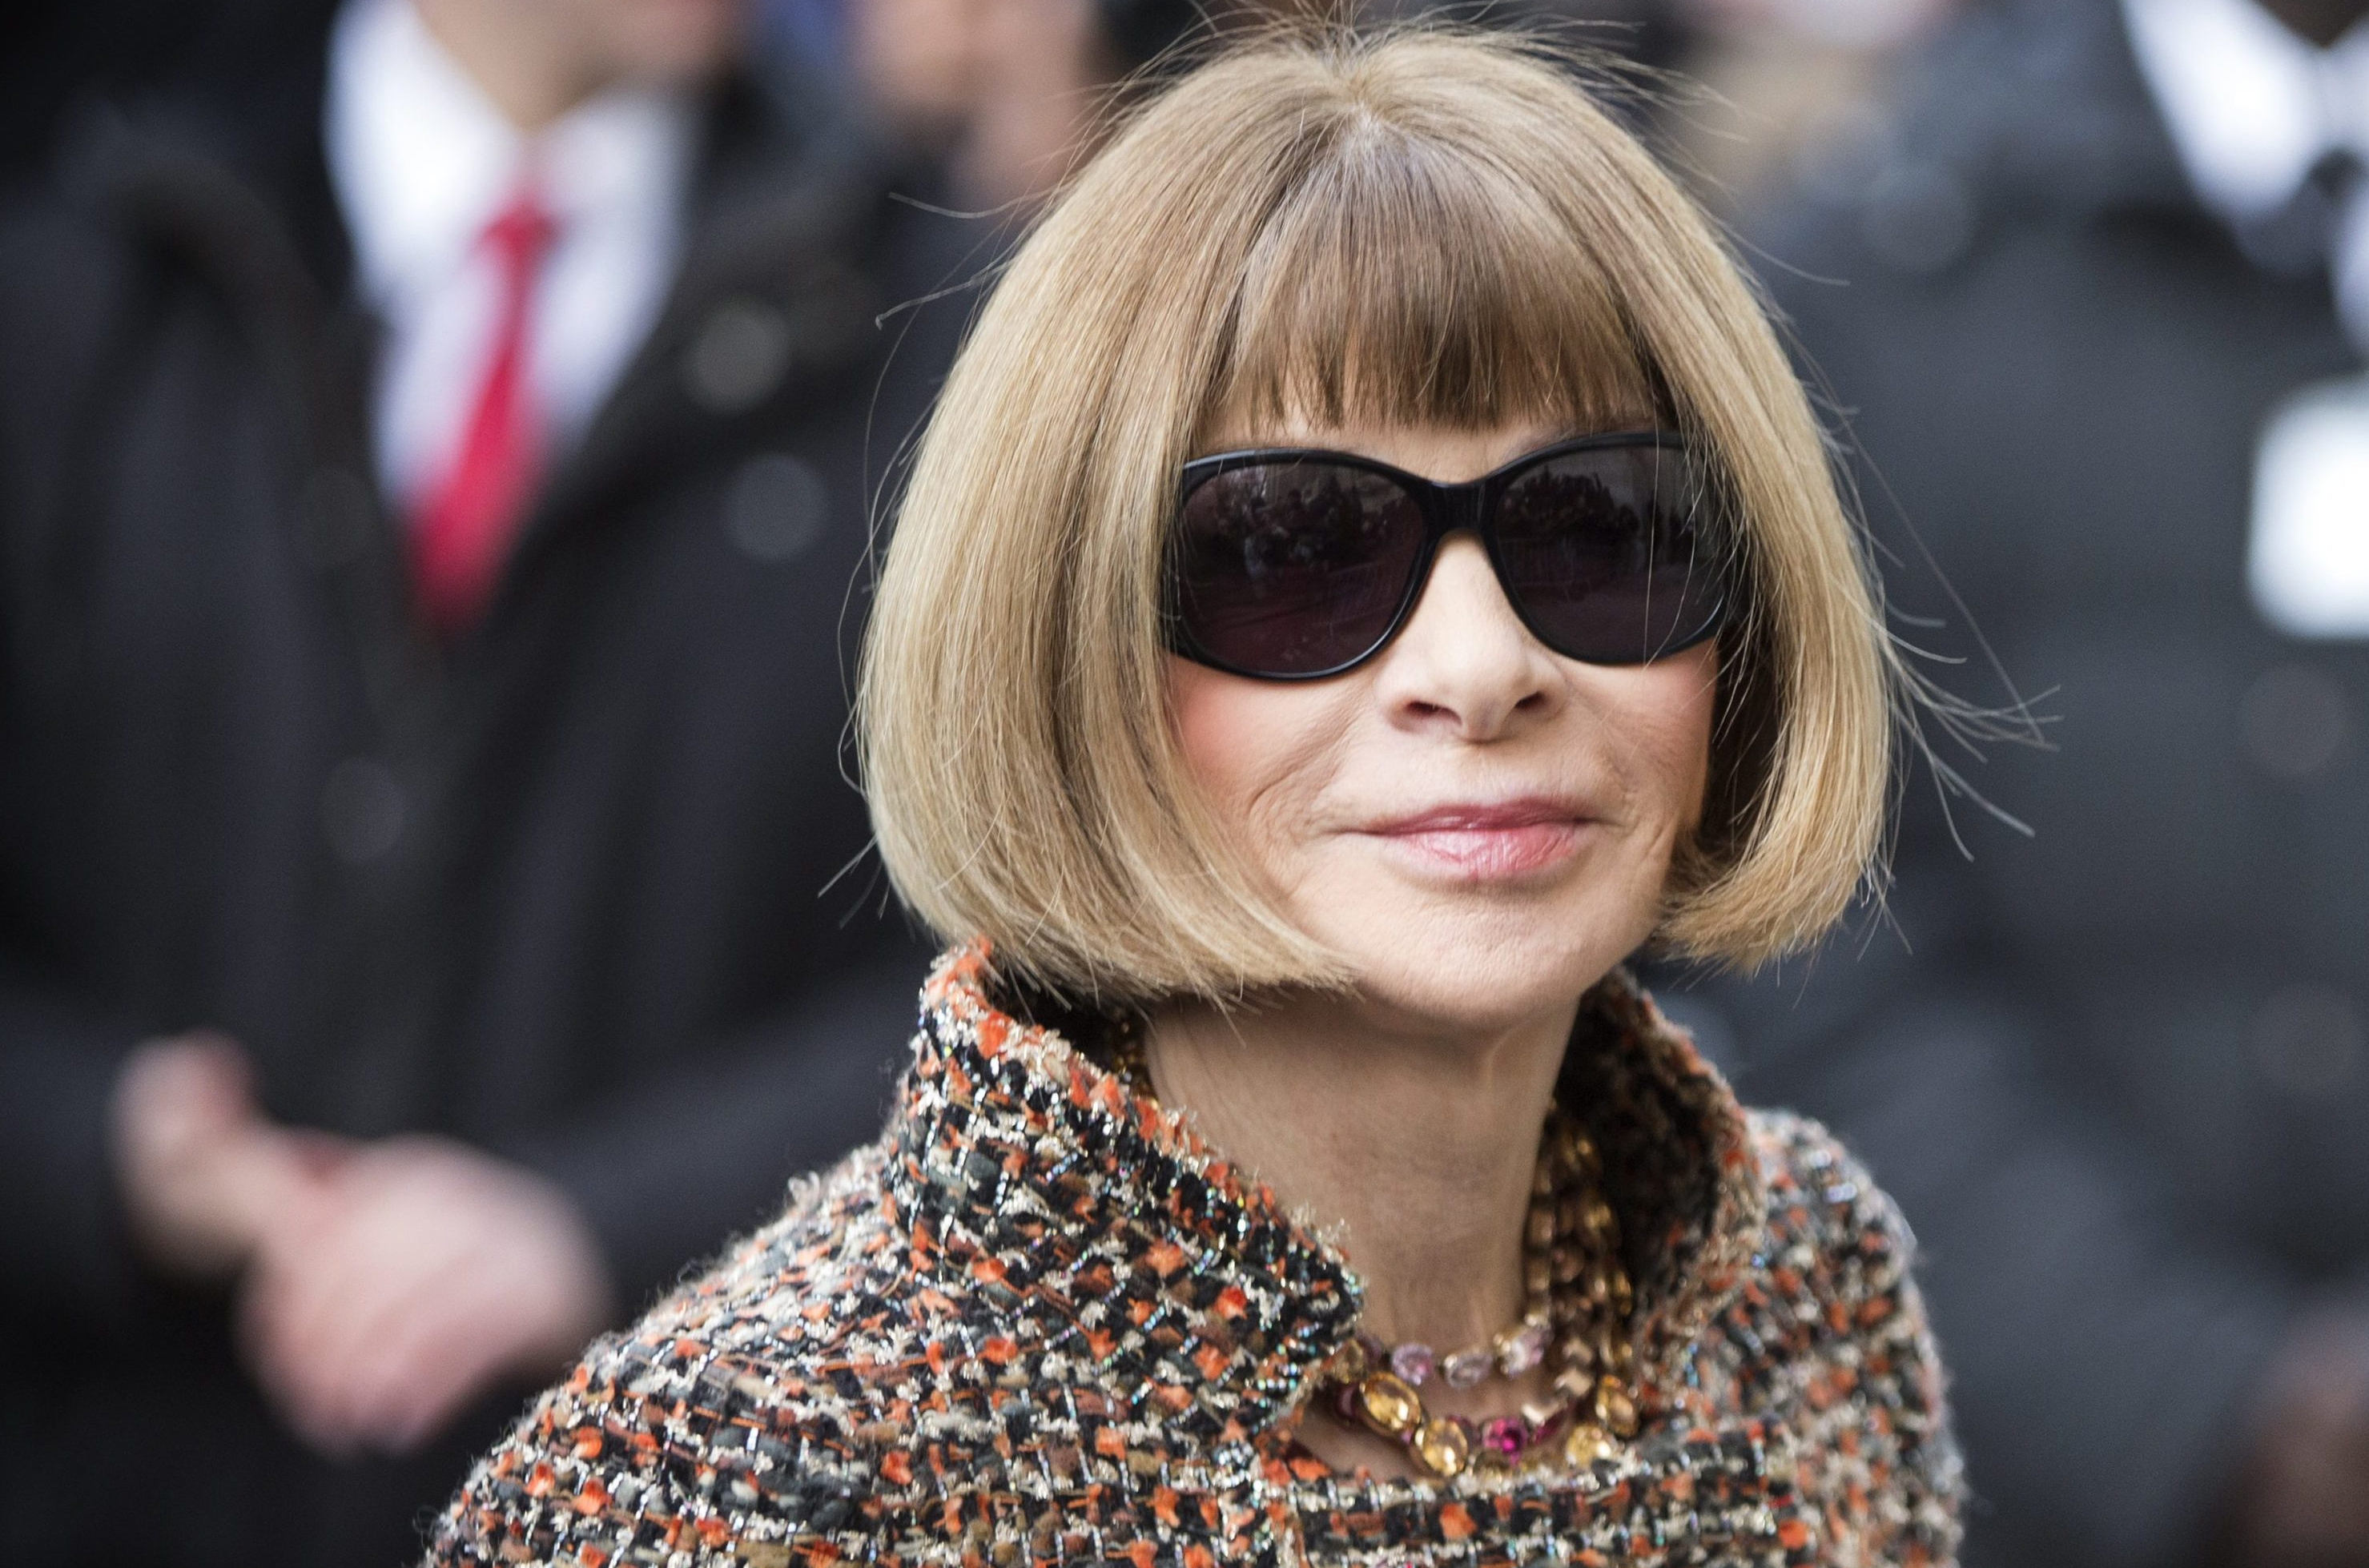 Fashion mogul and Vogue's Editor-in-chief, Anna Wintour, celebrated her 66th birthday this week.